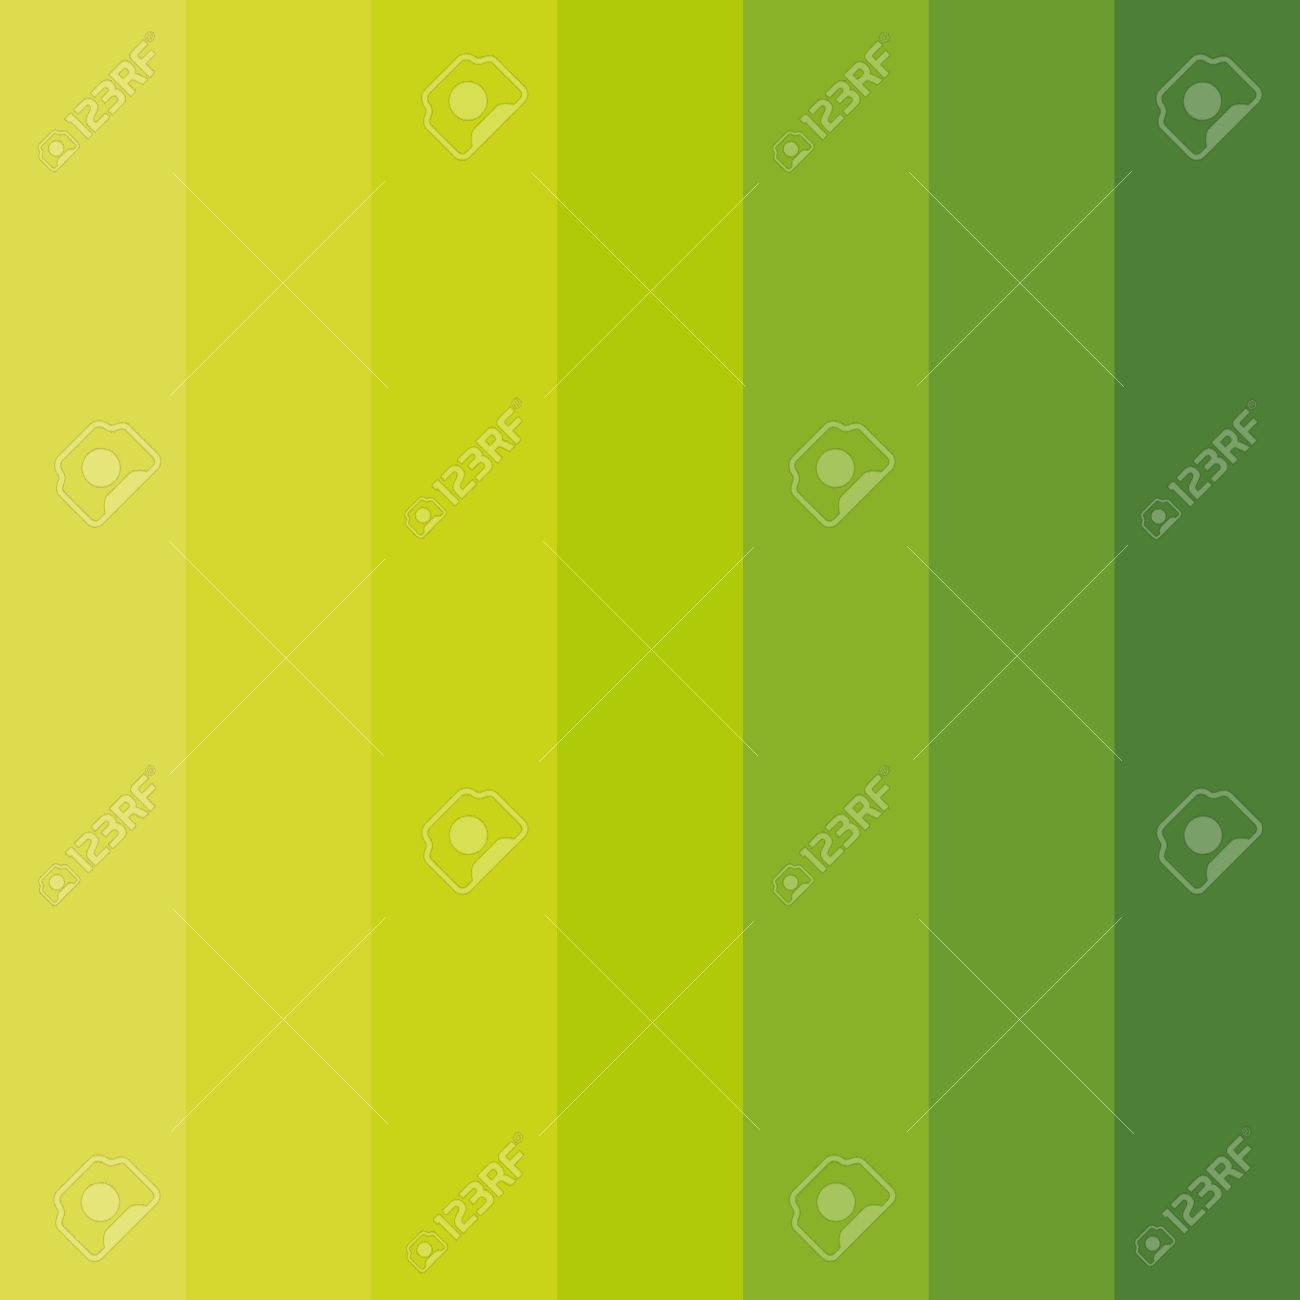 Abstract Conceptual Background Of Rectangles In Different Shades ...